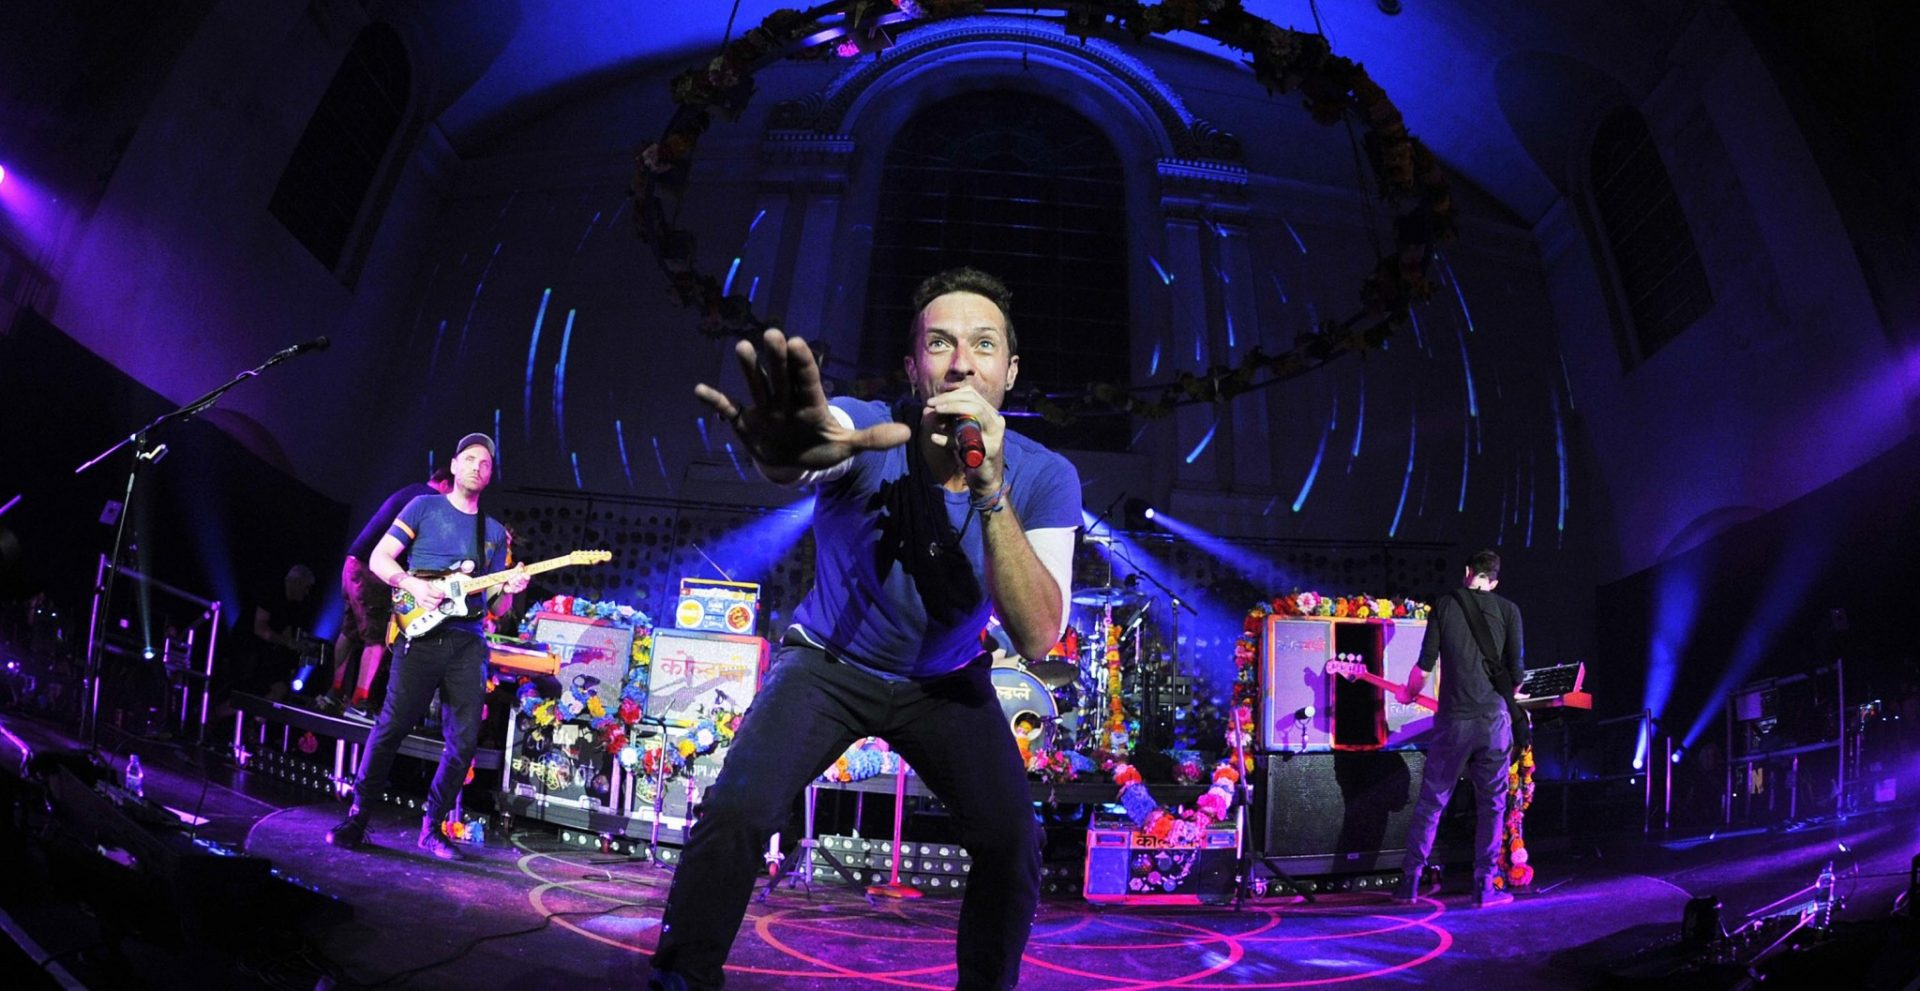 Radio 1's Big Weekend headliners Coldplay